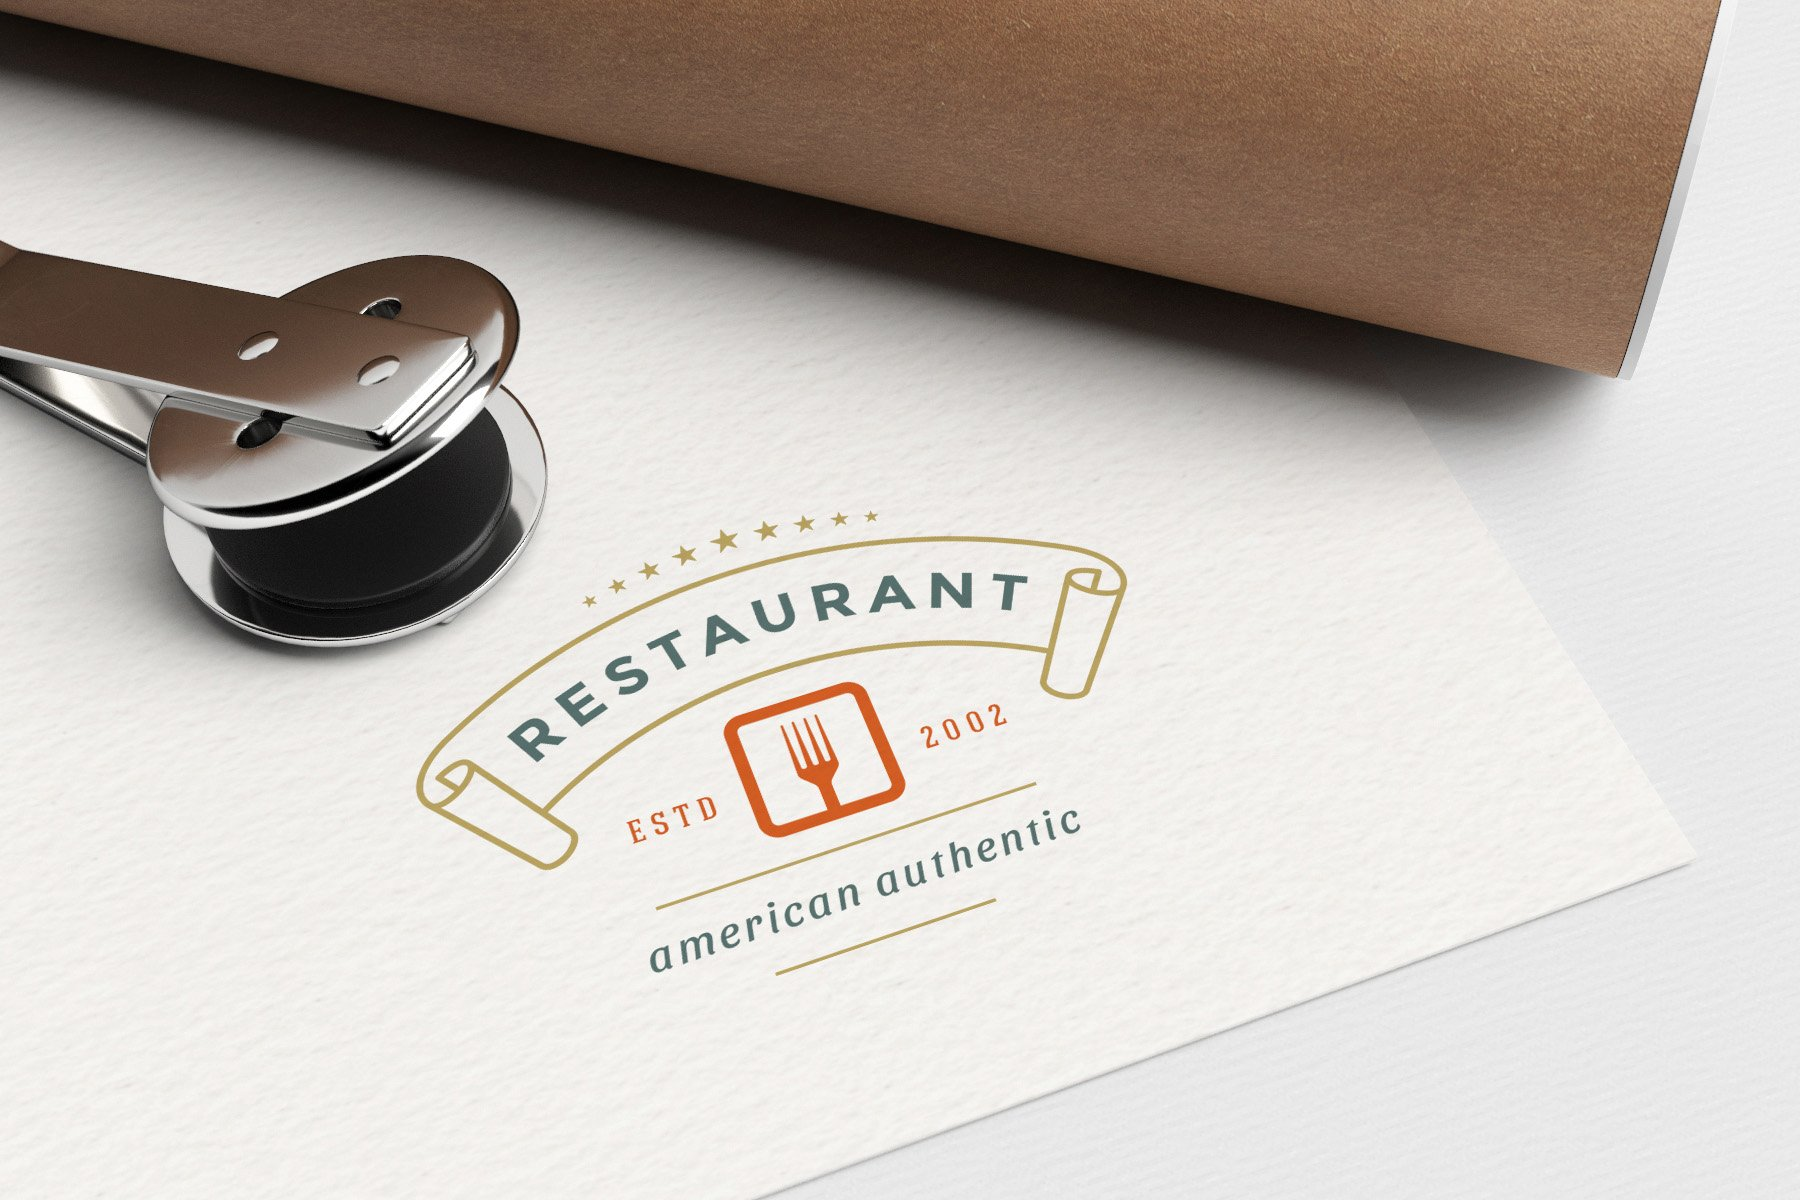 36 Restaurant Logos and Badges example image 15